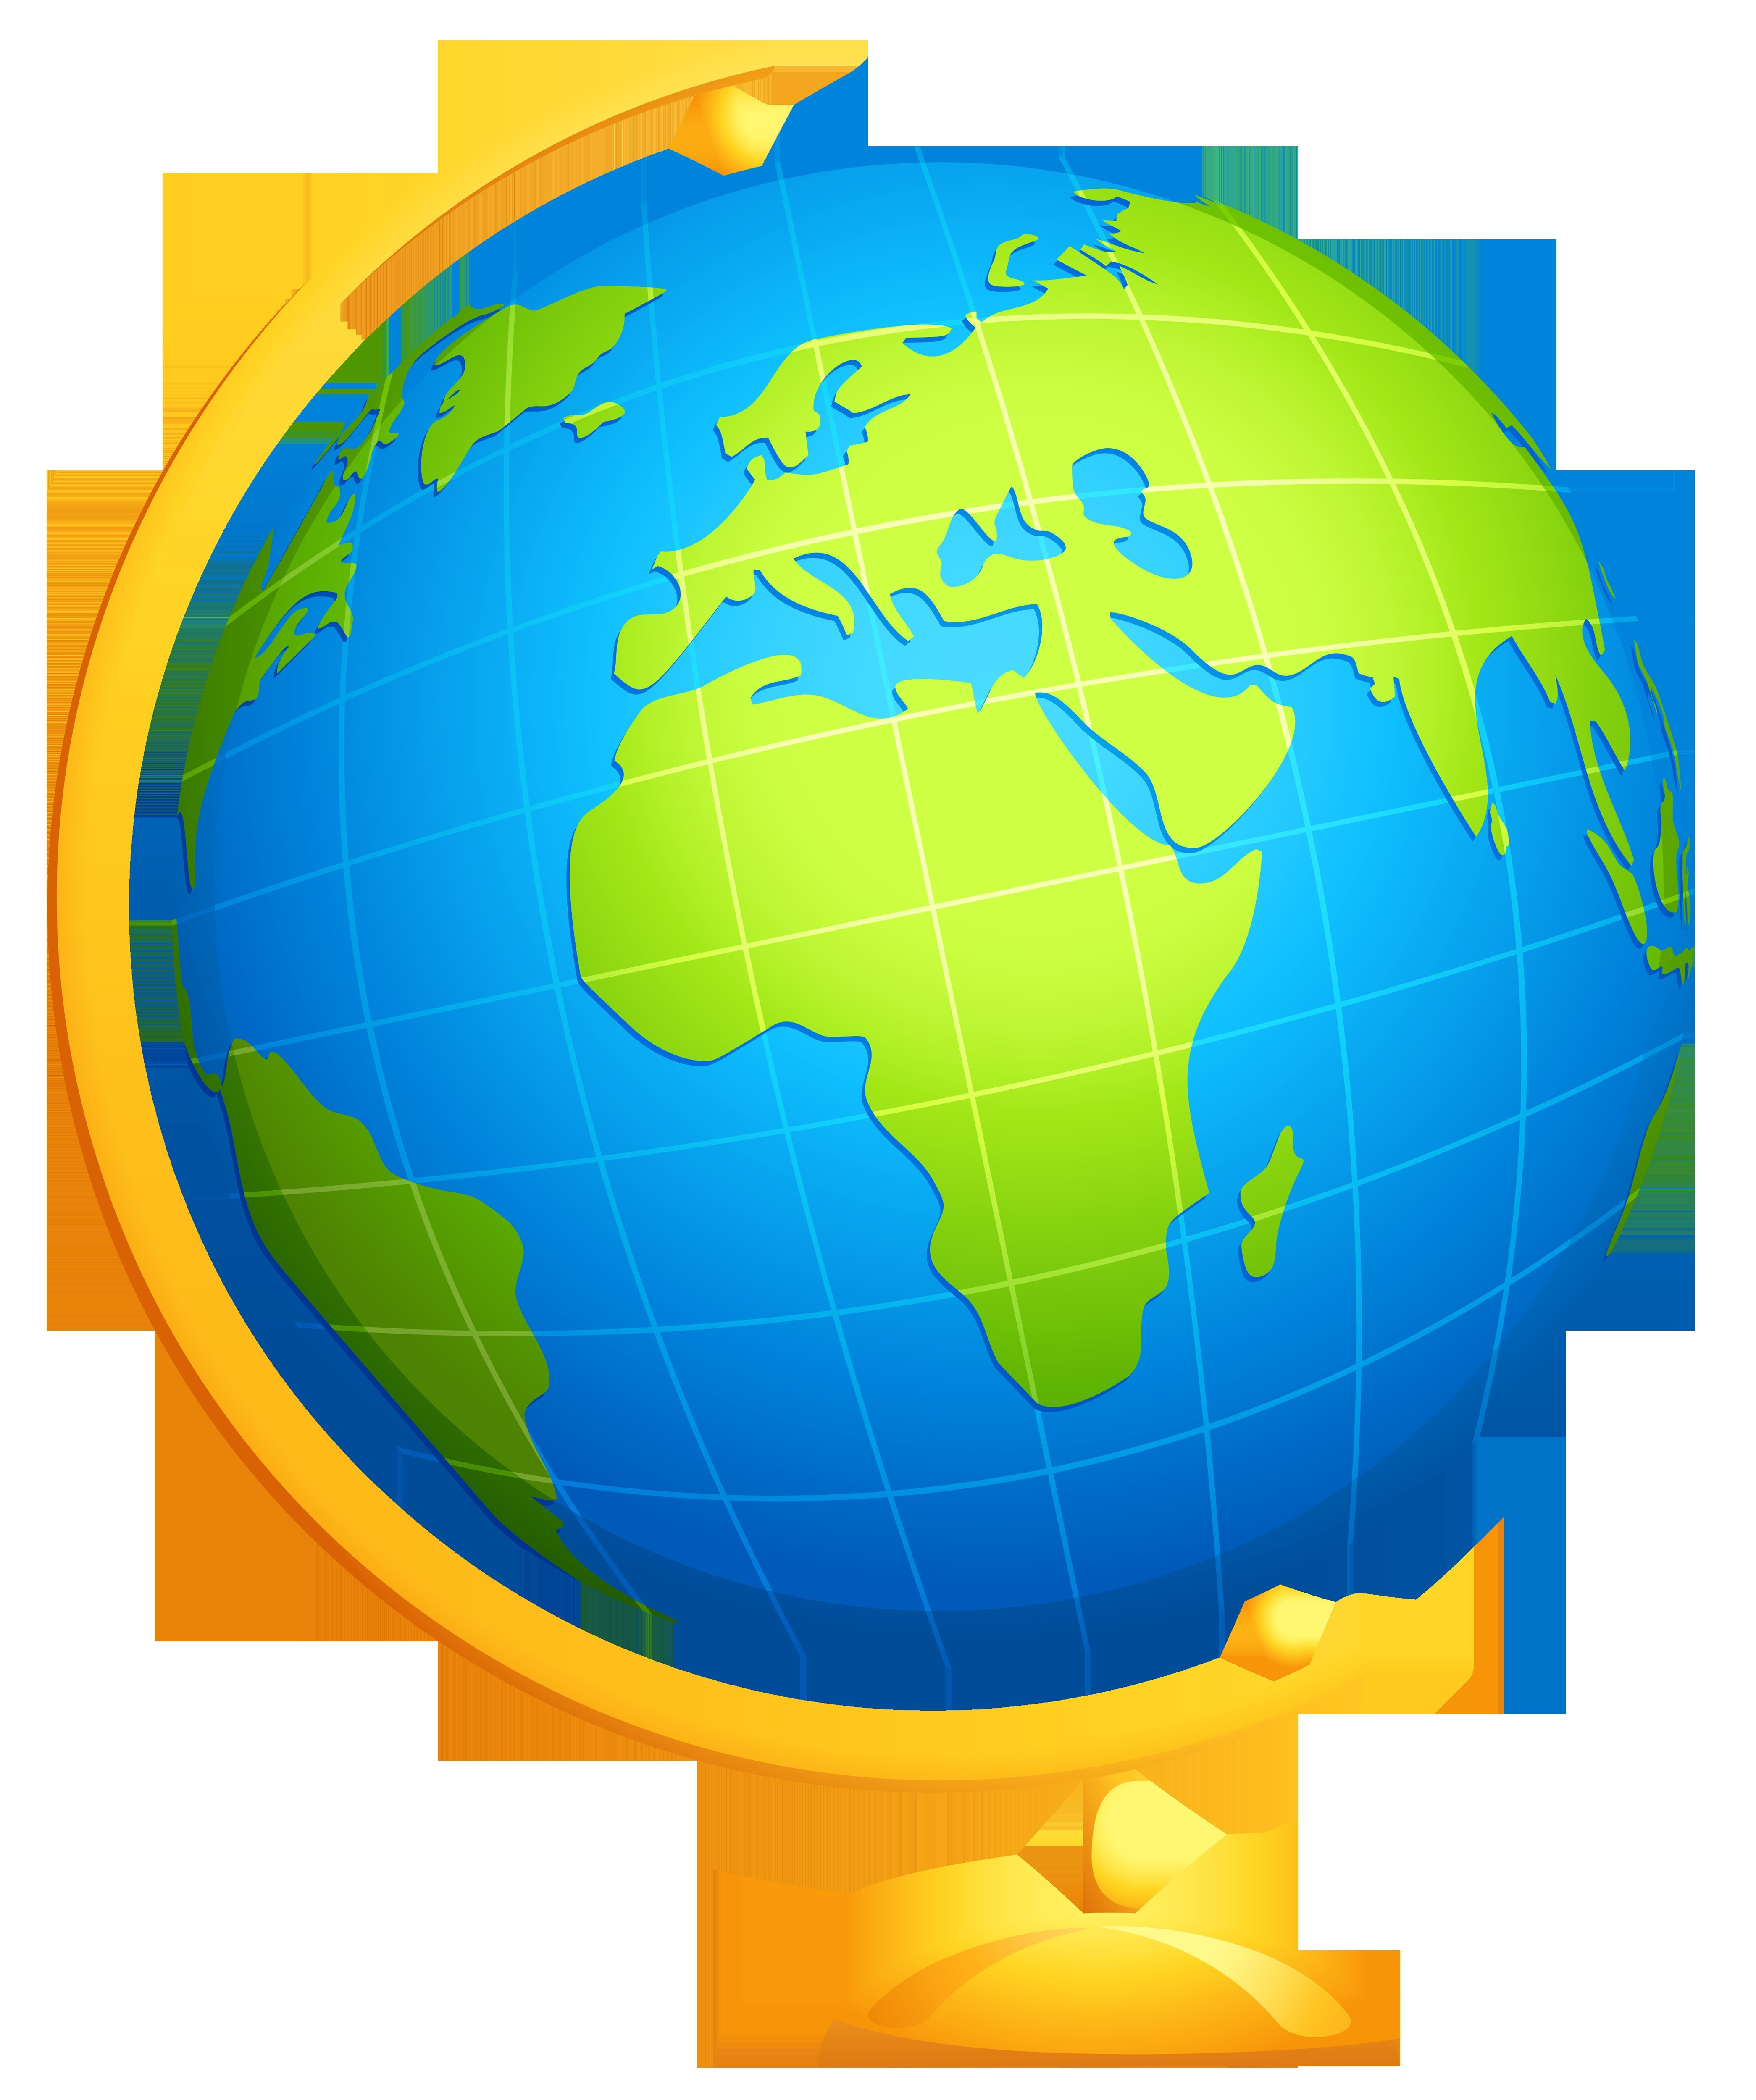 World map clipart at getdrawings free for personal use world 4180x5000 top 94 world clip art free clipart image cool images transitionsfv gumiabroncs Choice Image